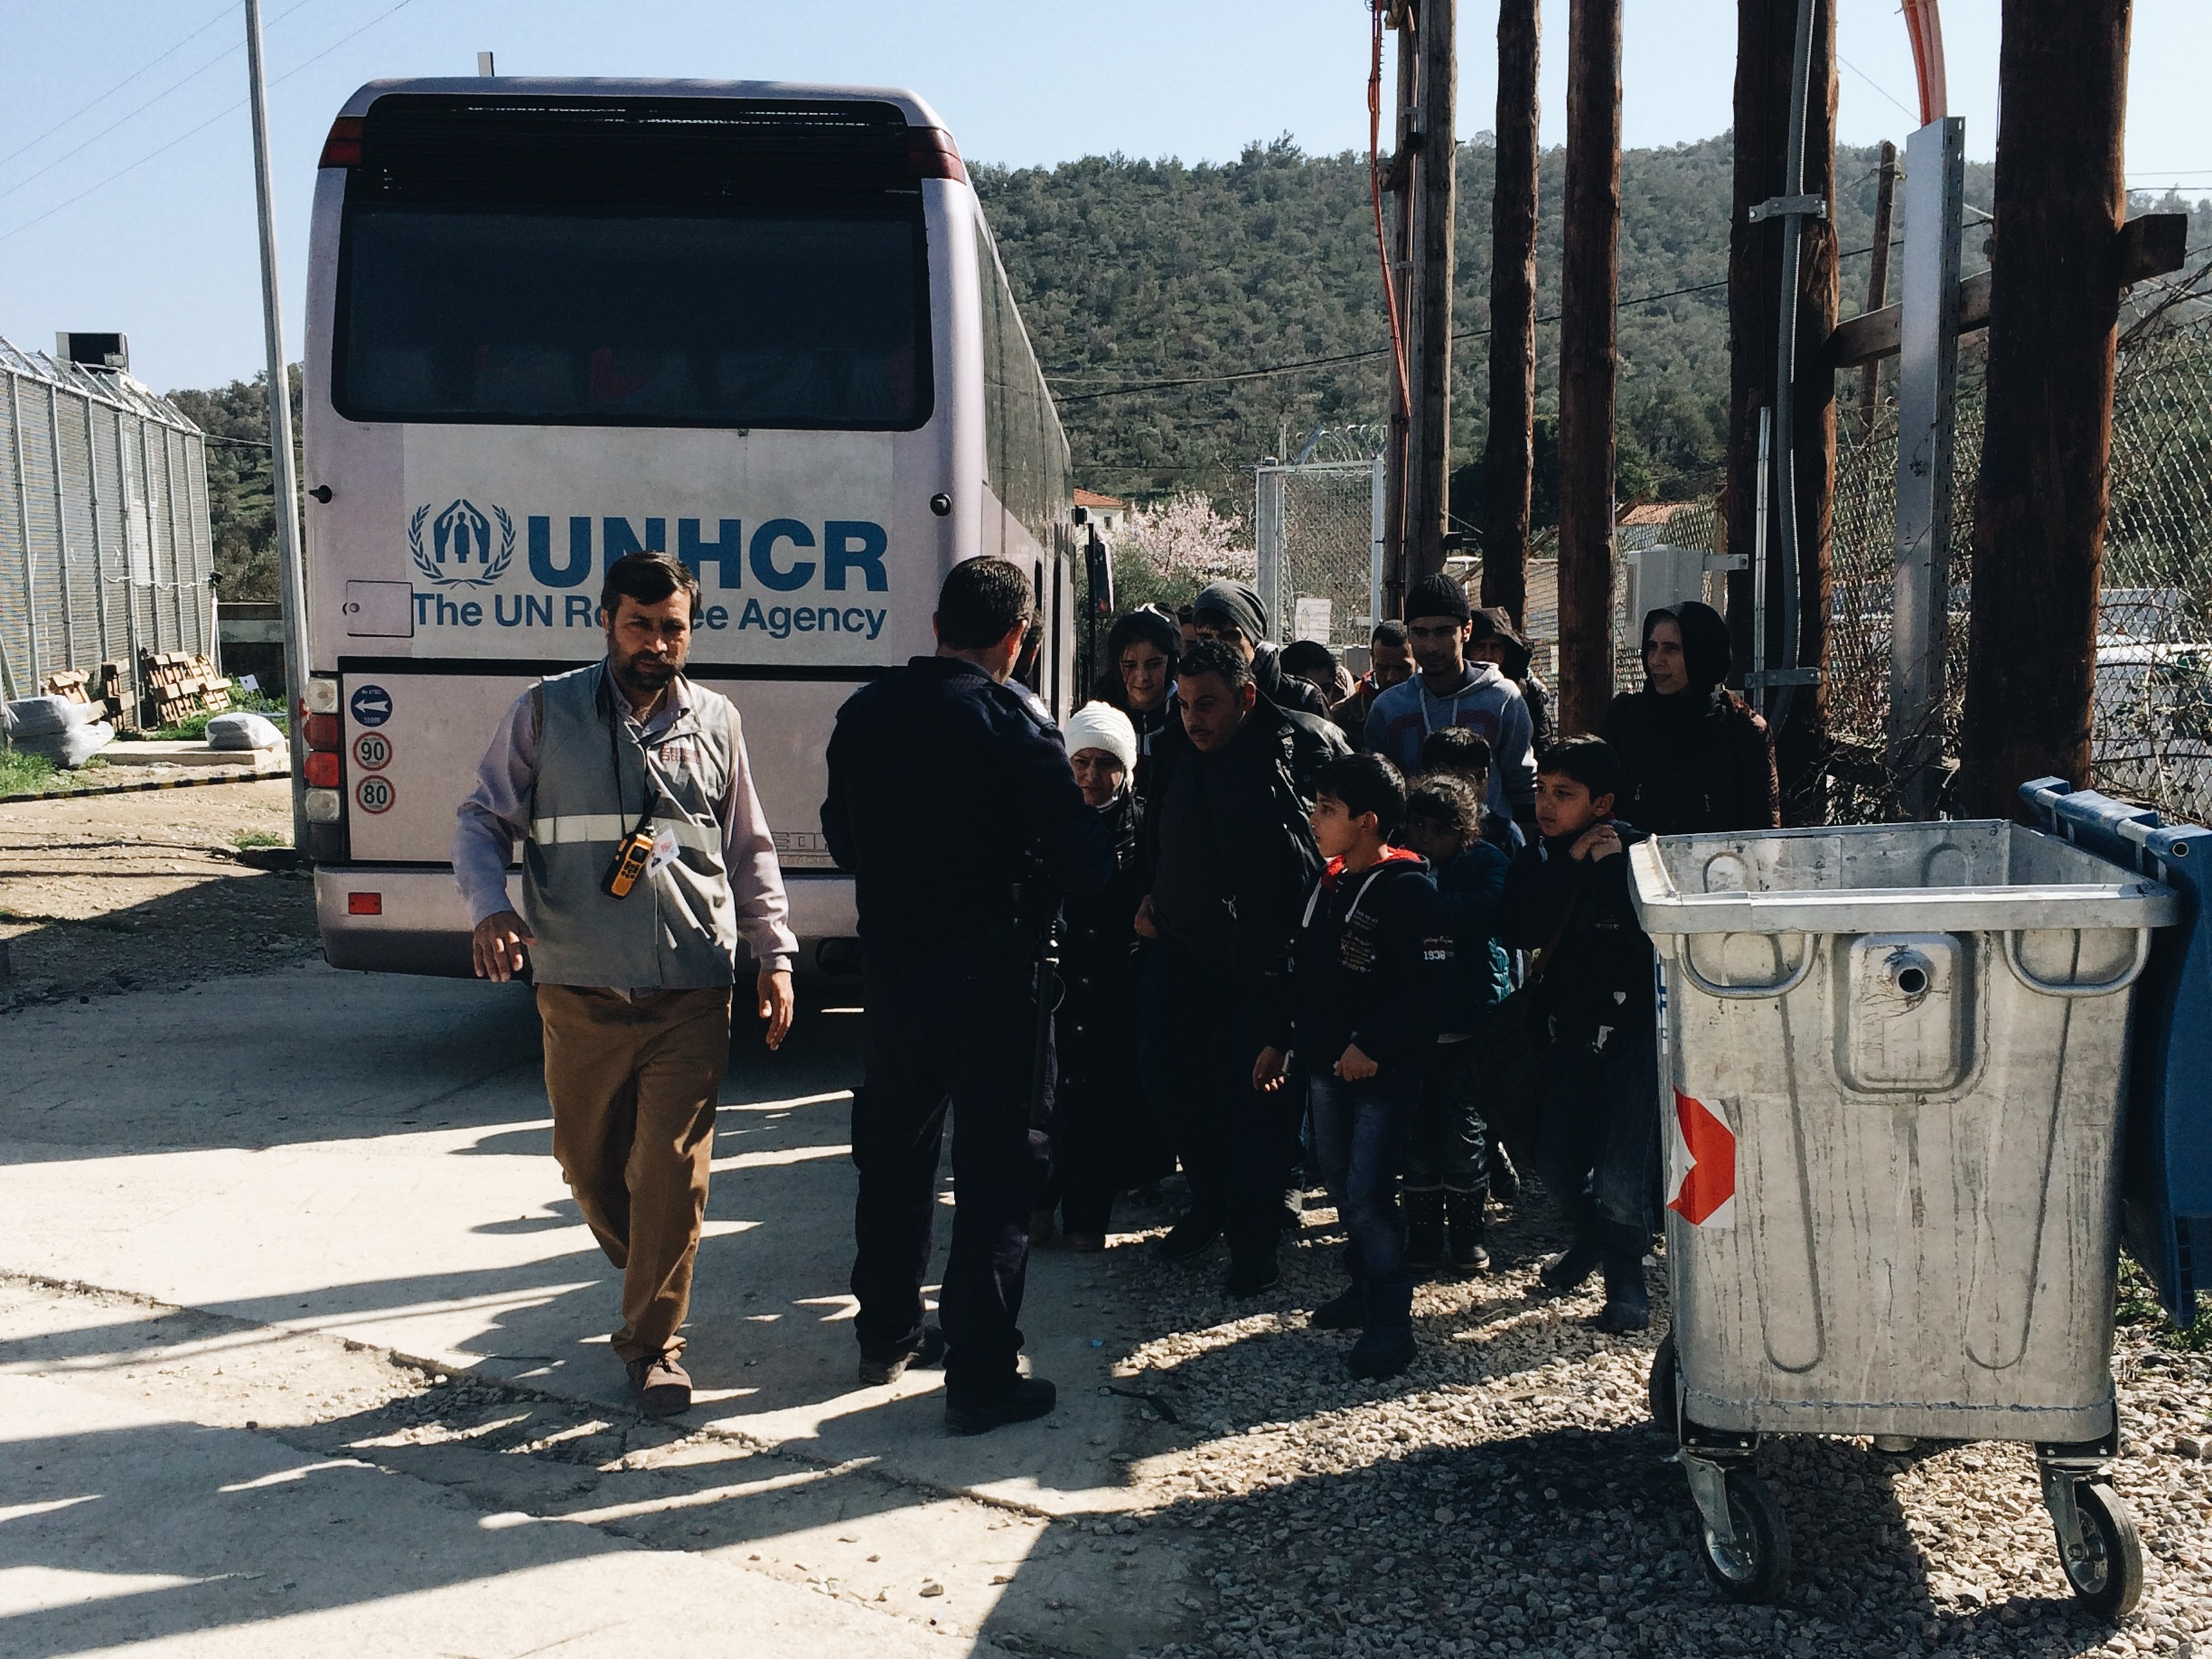 Refugees being received from UNHCR buses and given tickets with their registration numbers on them.